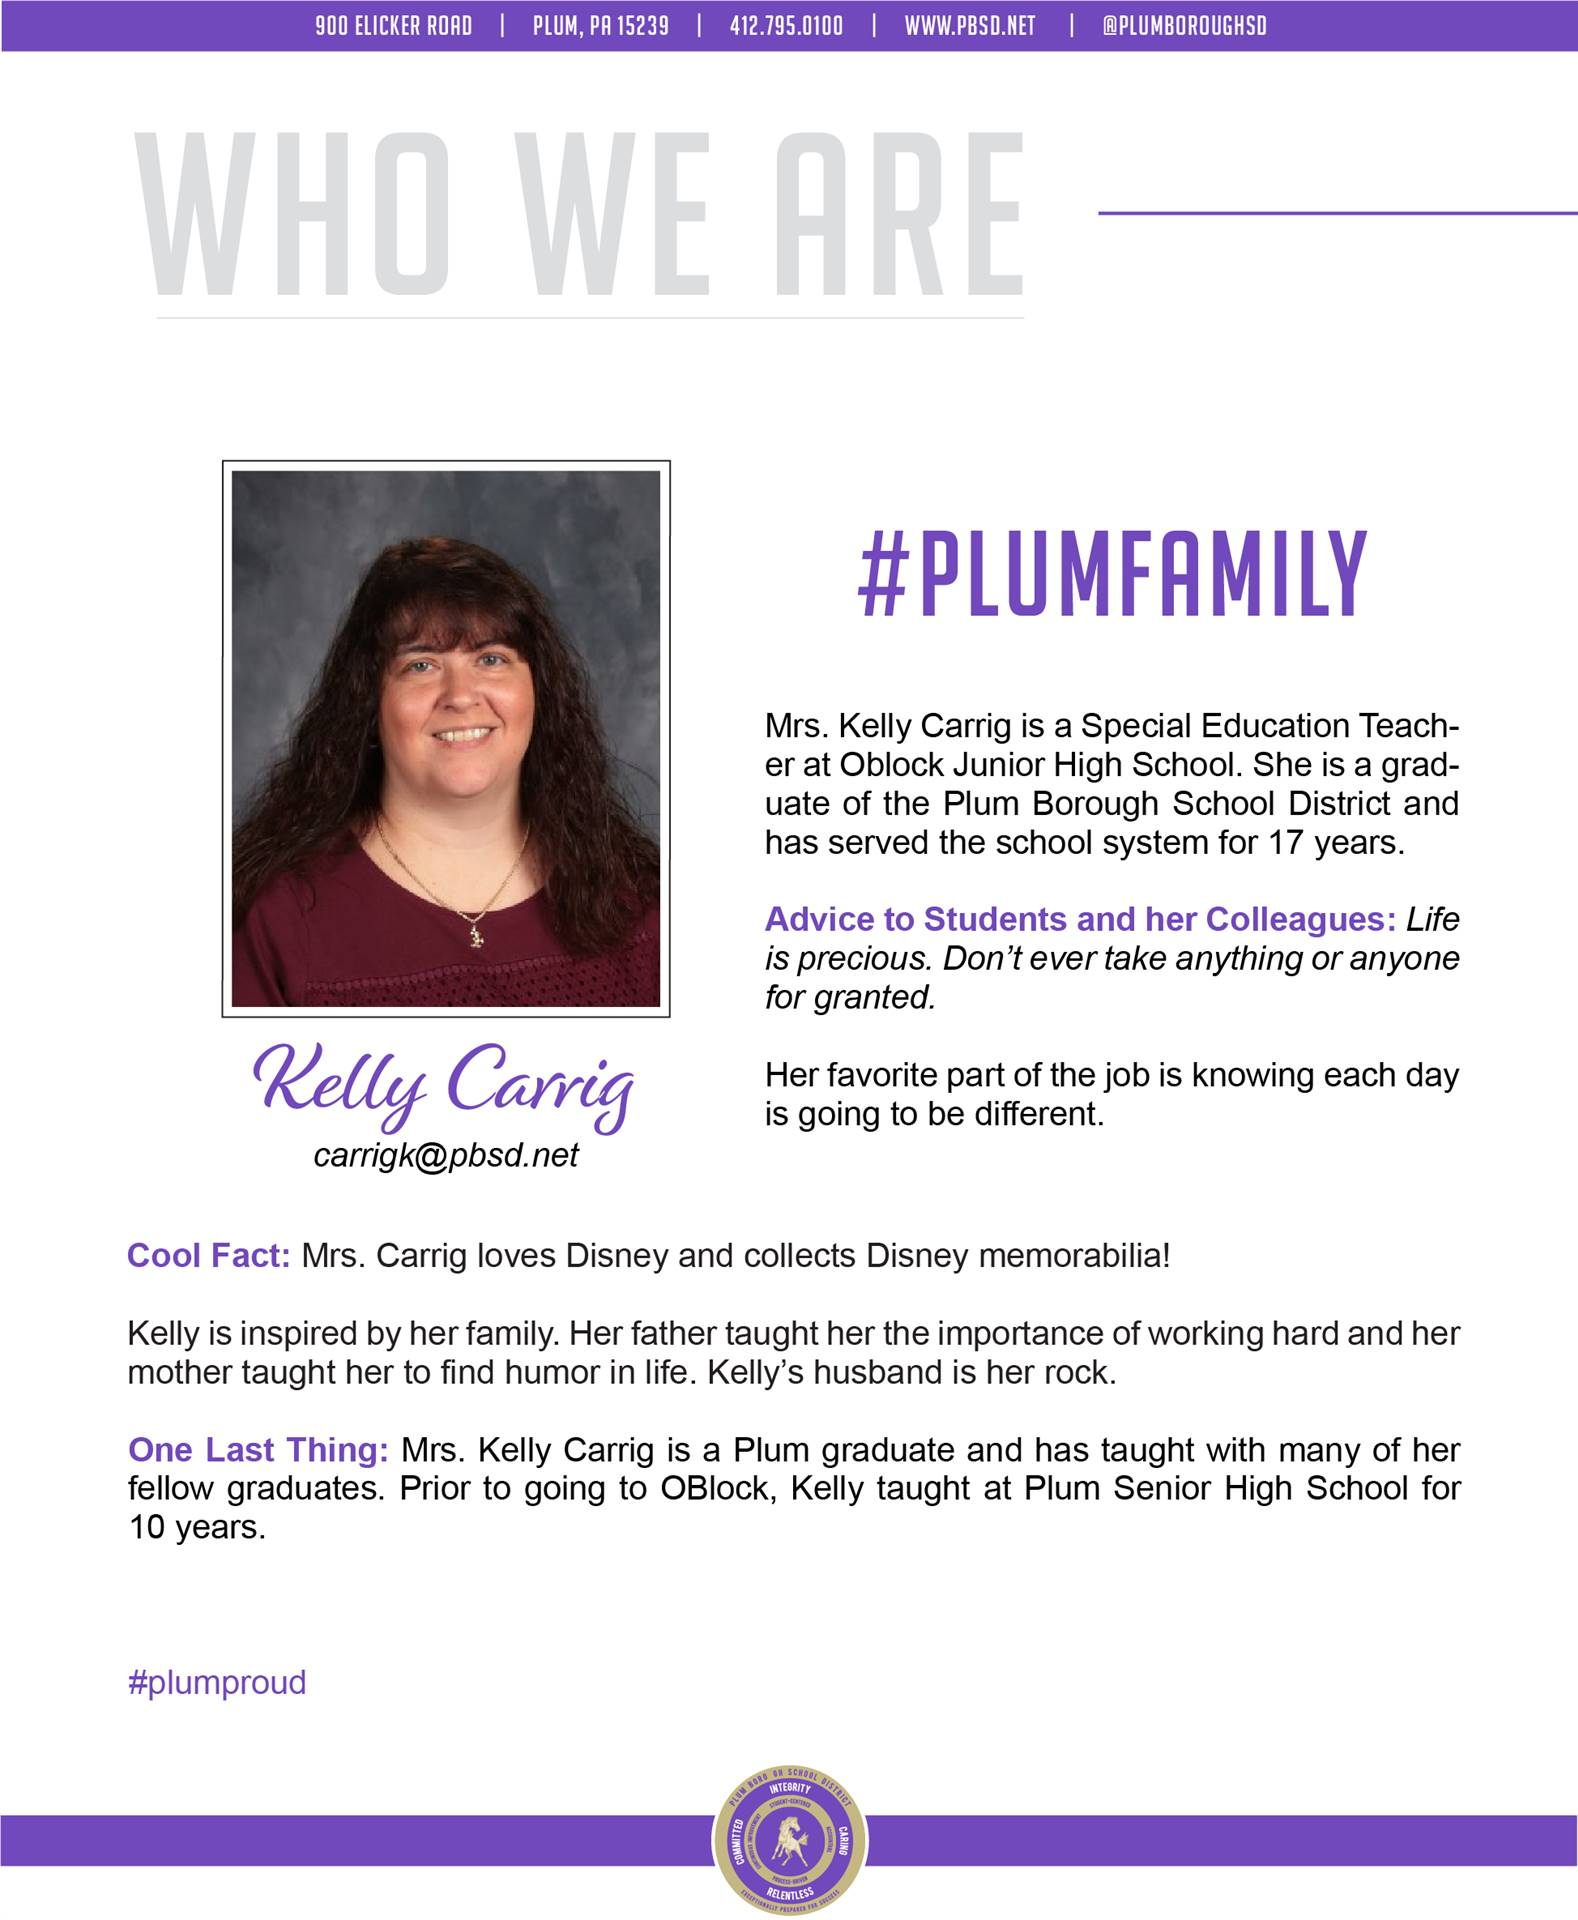 Who We Are Wednesday features Kelly Carrig.